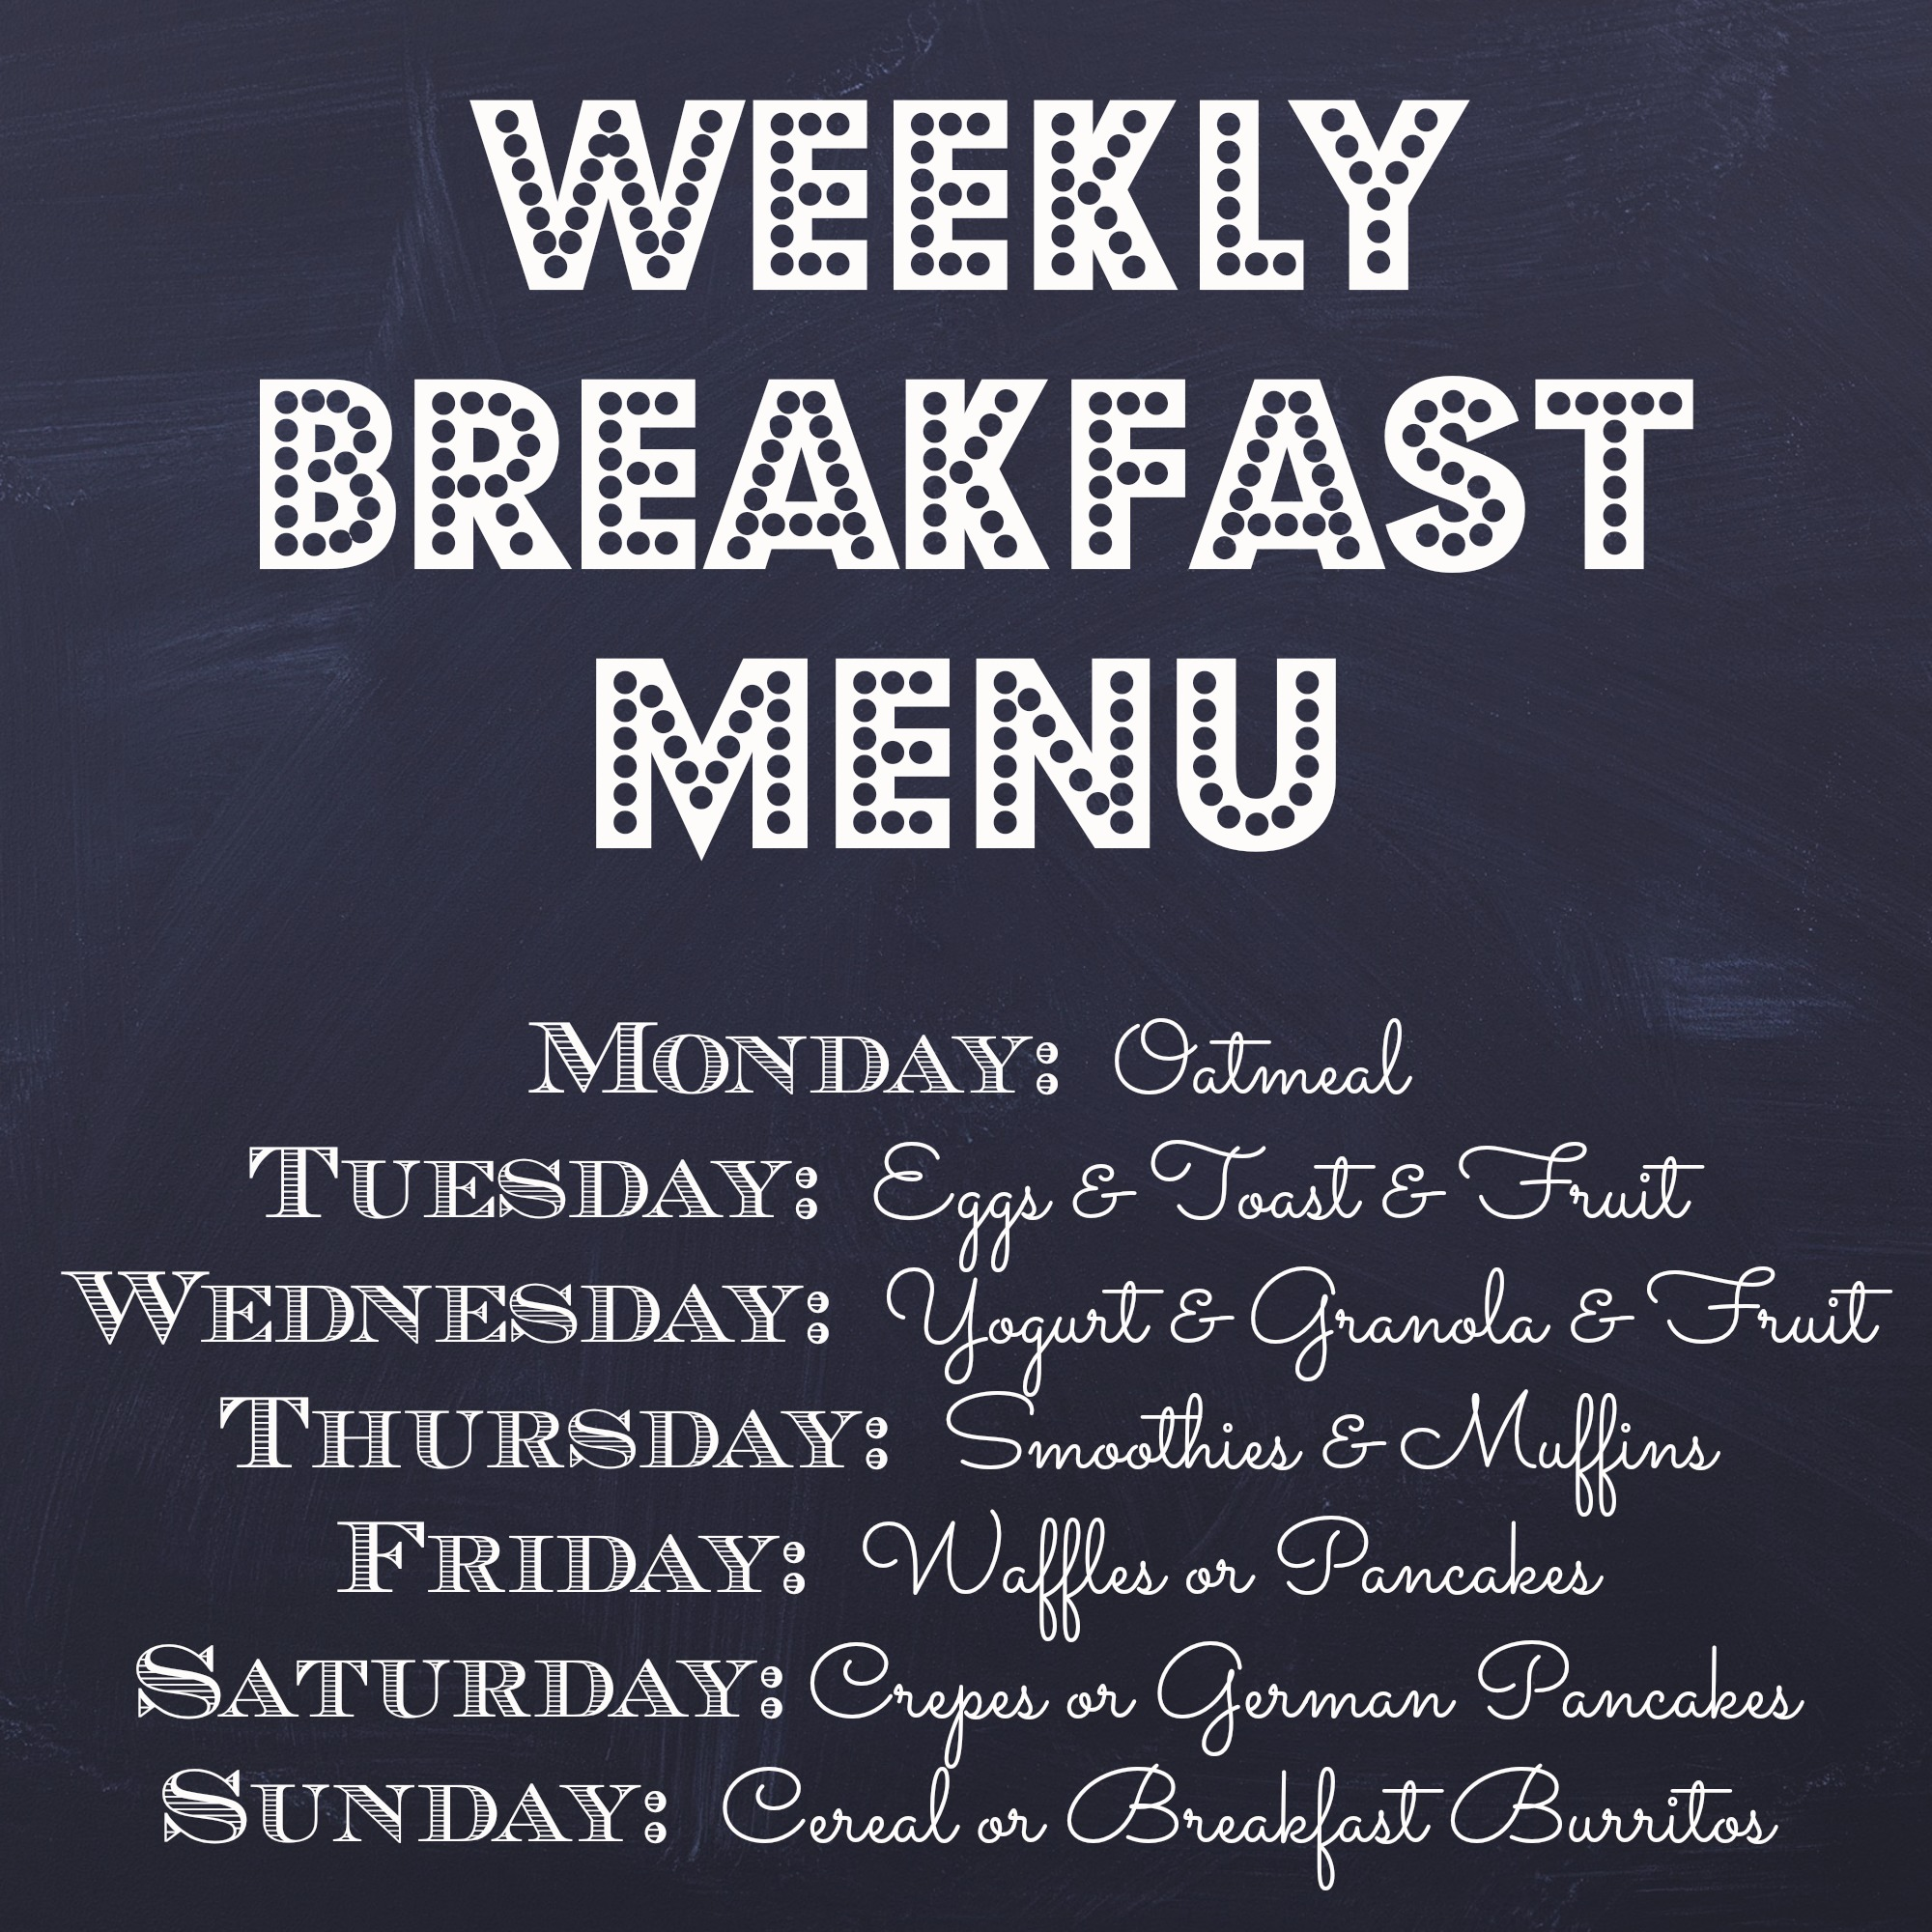 Weekly Breakfast Menu